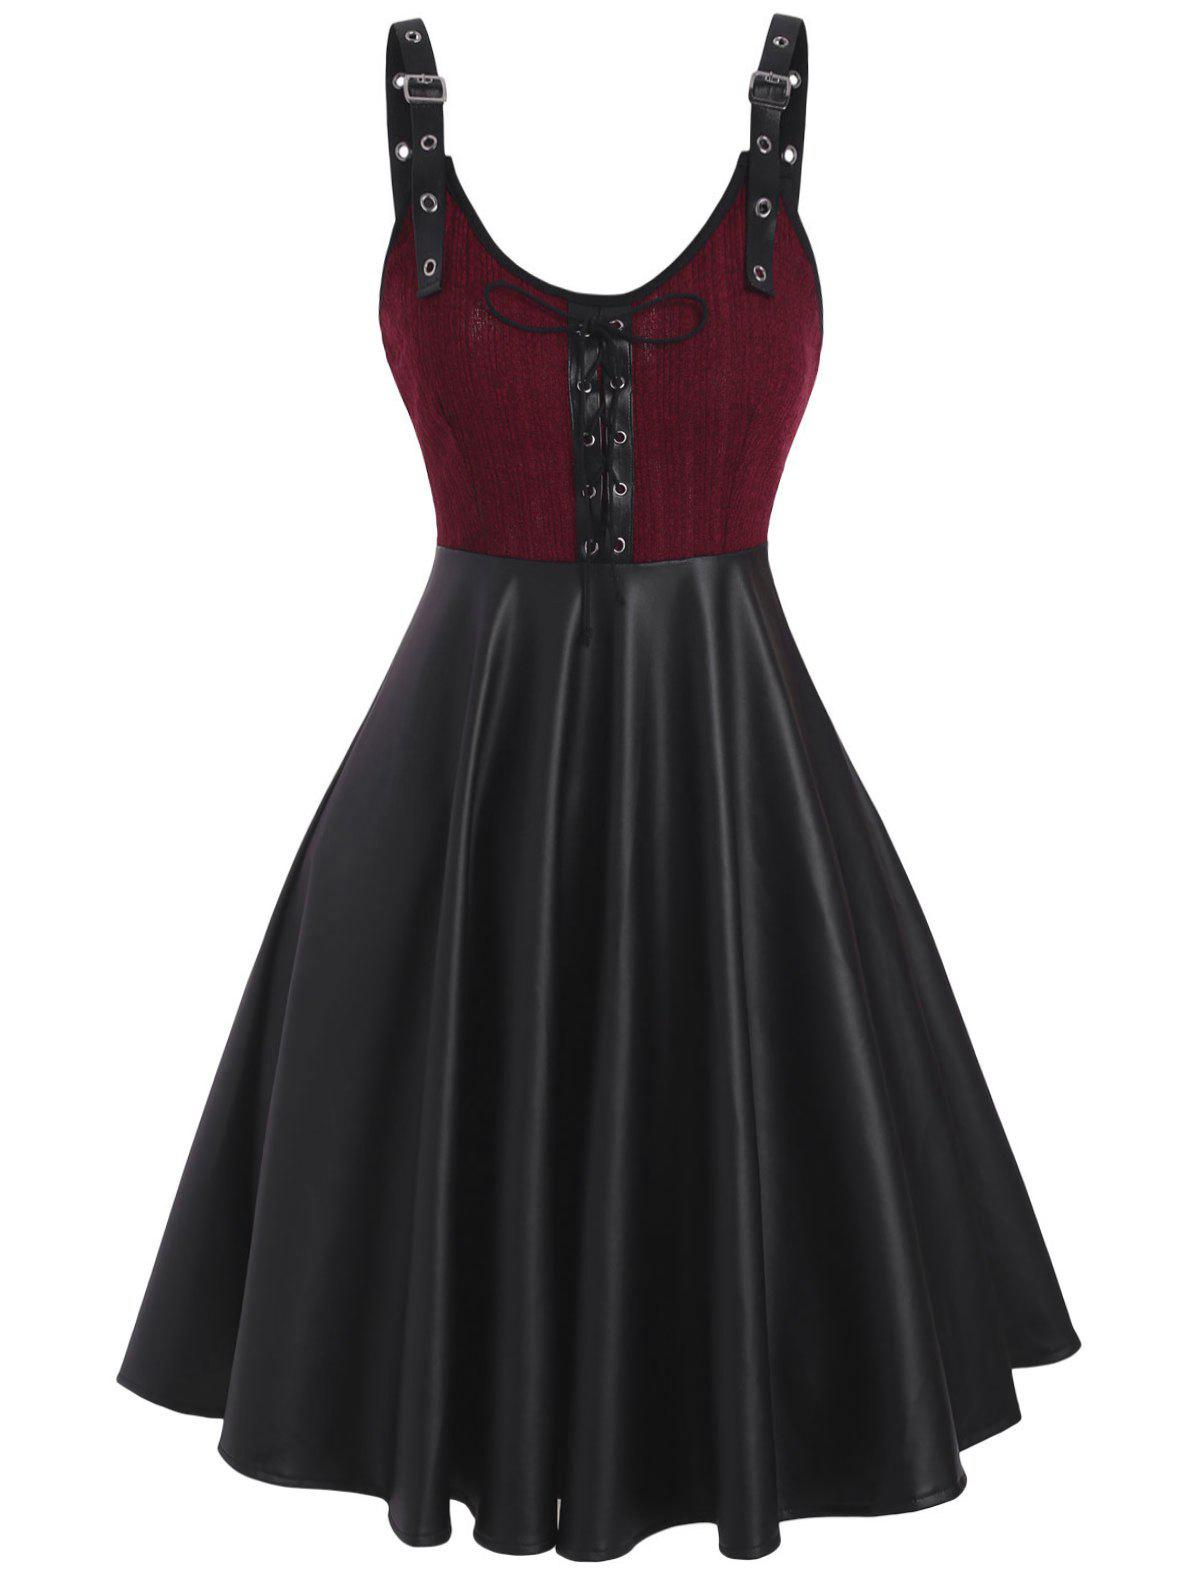 Buckled Lace-up Knit Panel Faux Leather Dress - DEEP RED XXXL